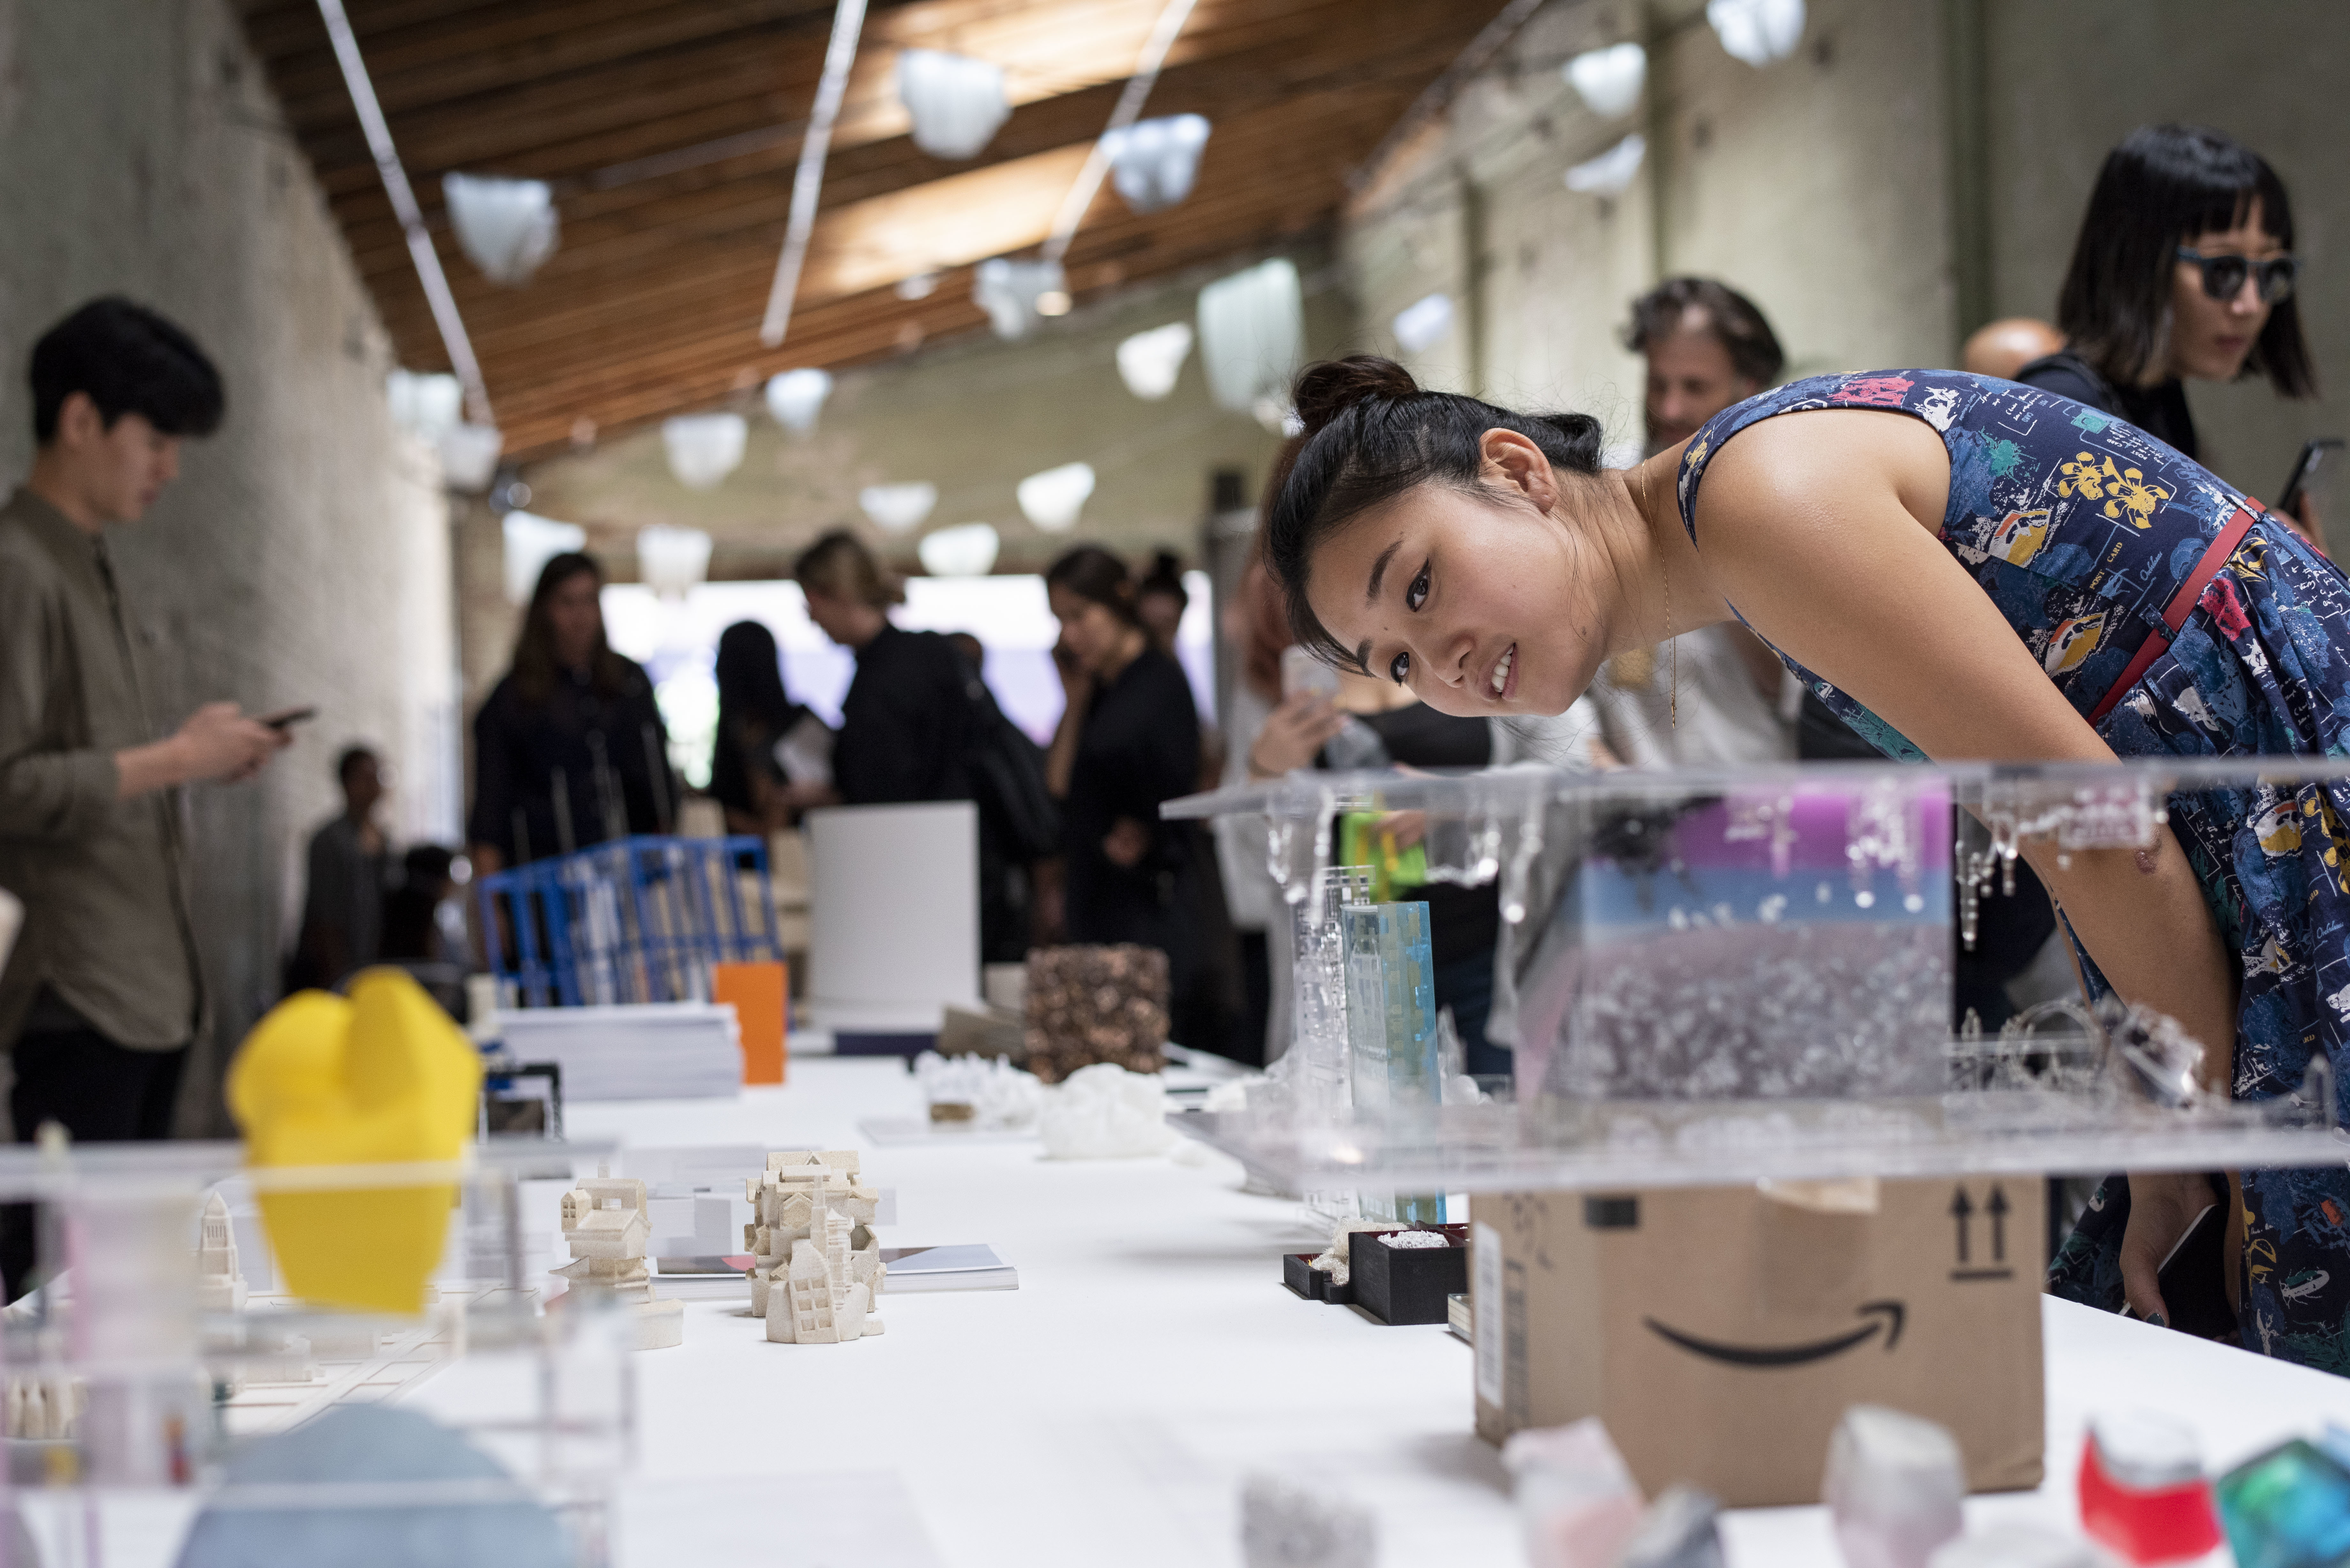 architecture enthusiast closely inspecting miniature thesis model